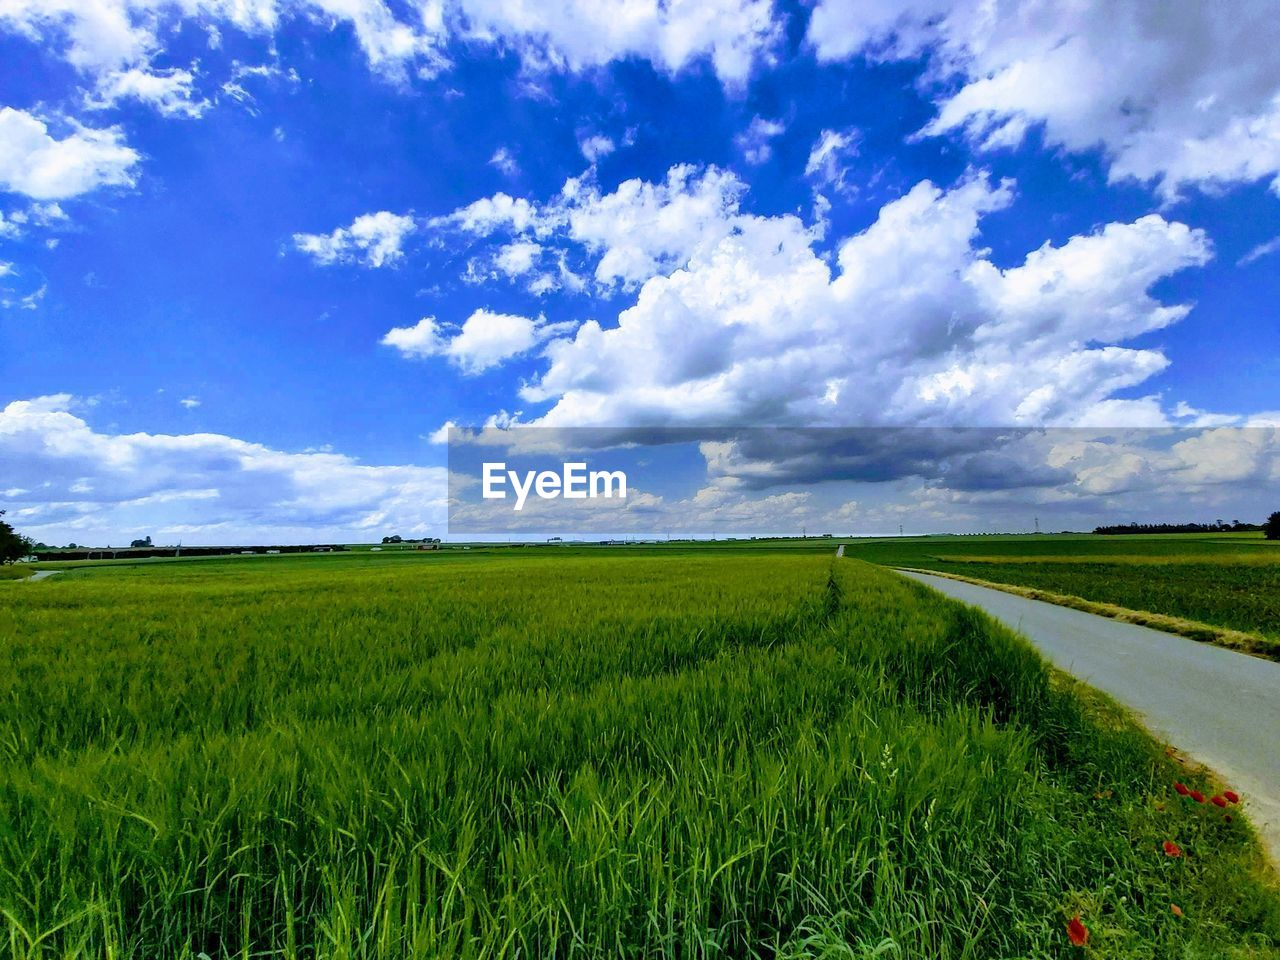 field, landscape, sky, cloud - sky, green color, environment, plant, tranquil scene, land, beauty in nature, tranquility, scenics - nature, growth, grass, agriculture, rural scene, no people, nature, day, road, outdoors